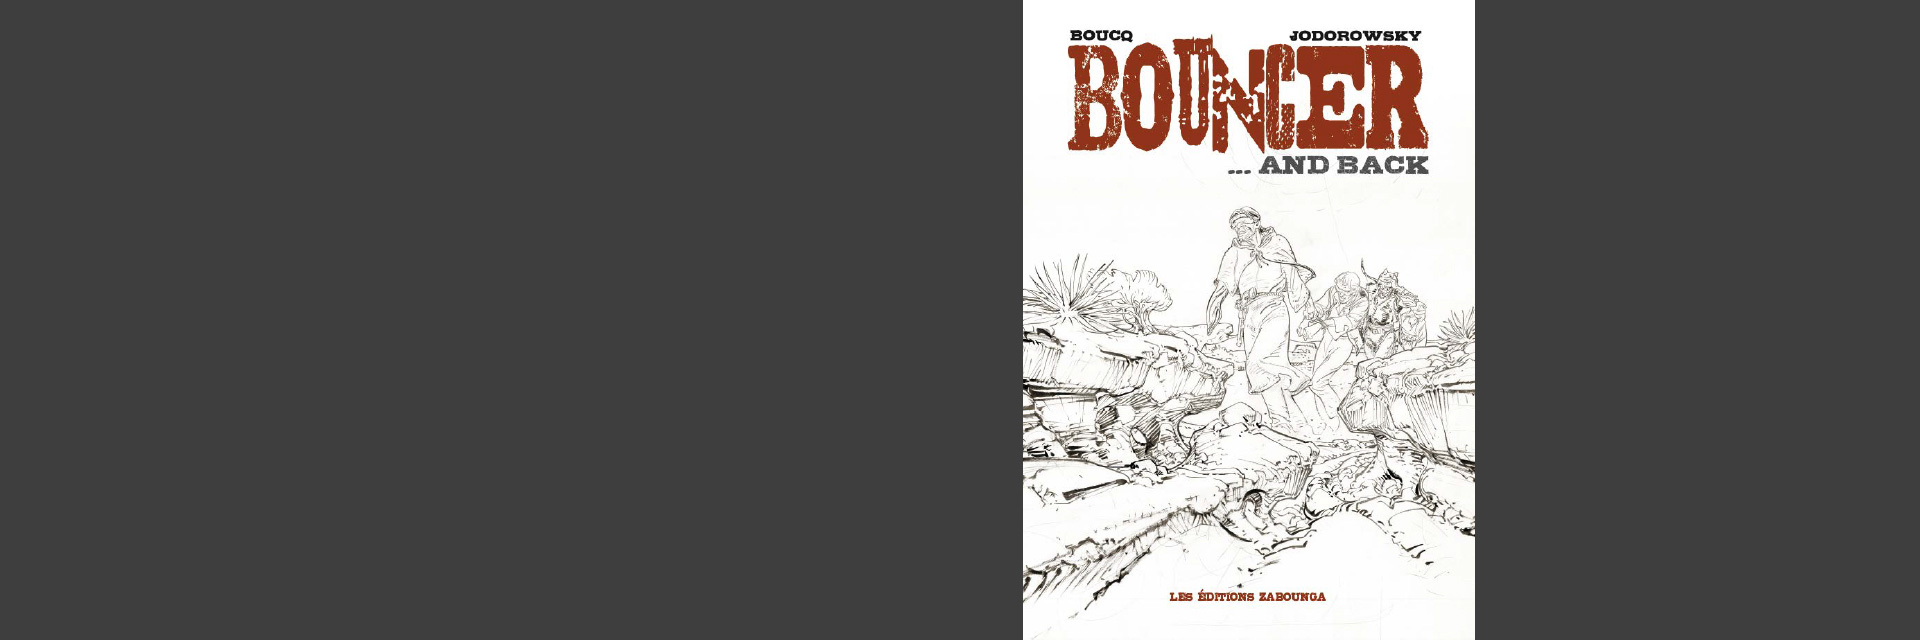 BOUCQ ET JODOROWSKY<br>BOUNCER …AND BACK